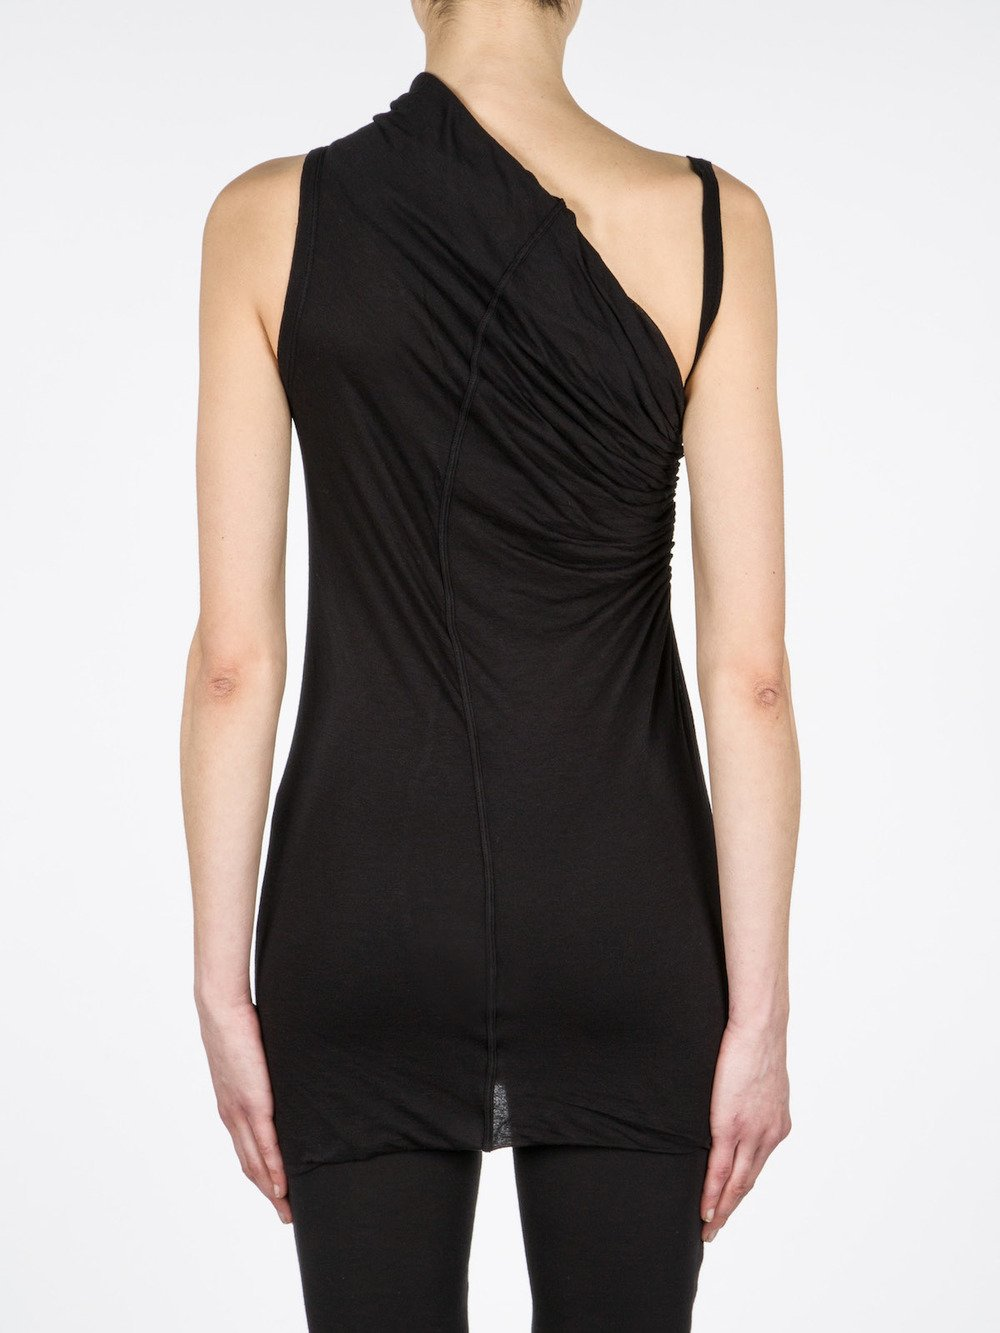 RICK OWENS - BLACK TOP